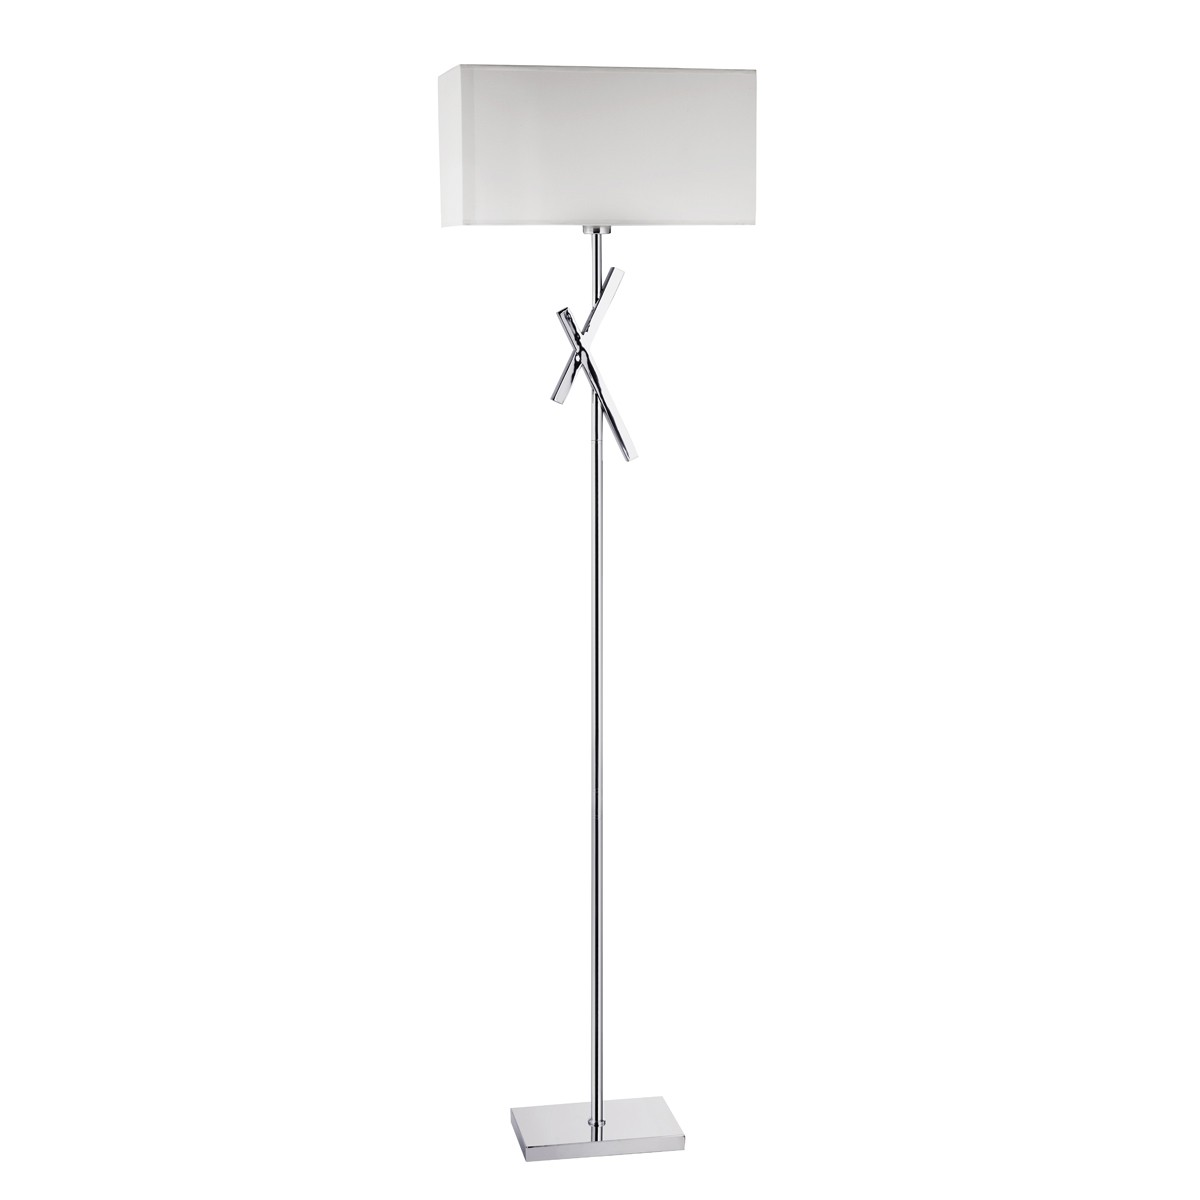 modern floor lamps  product categories  stanways stoves and  - acute chrome floor lamp with white rectangle shade – cc